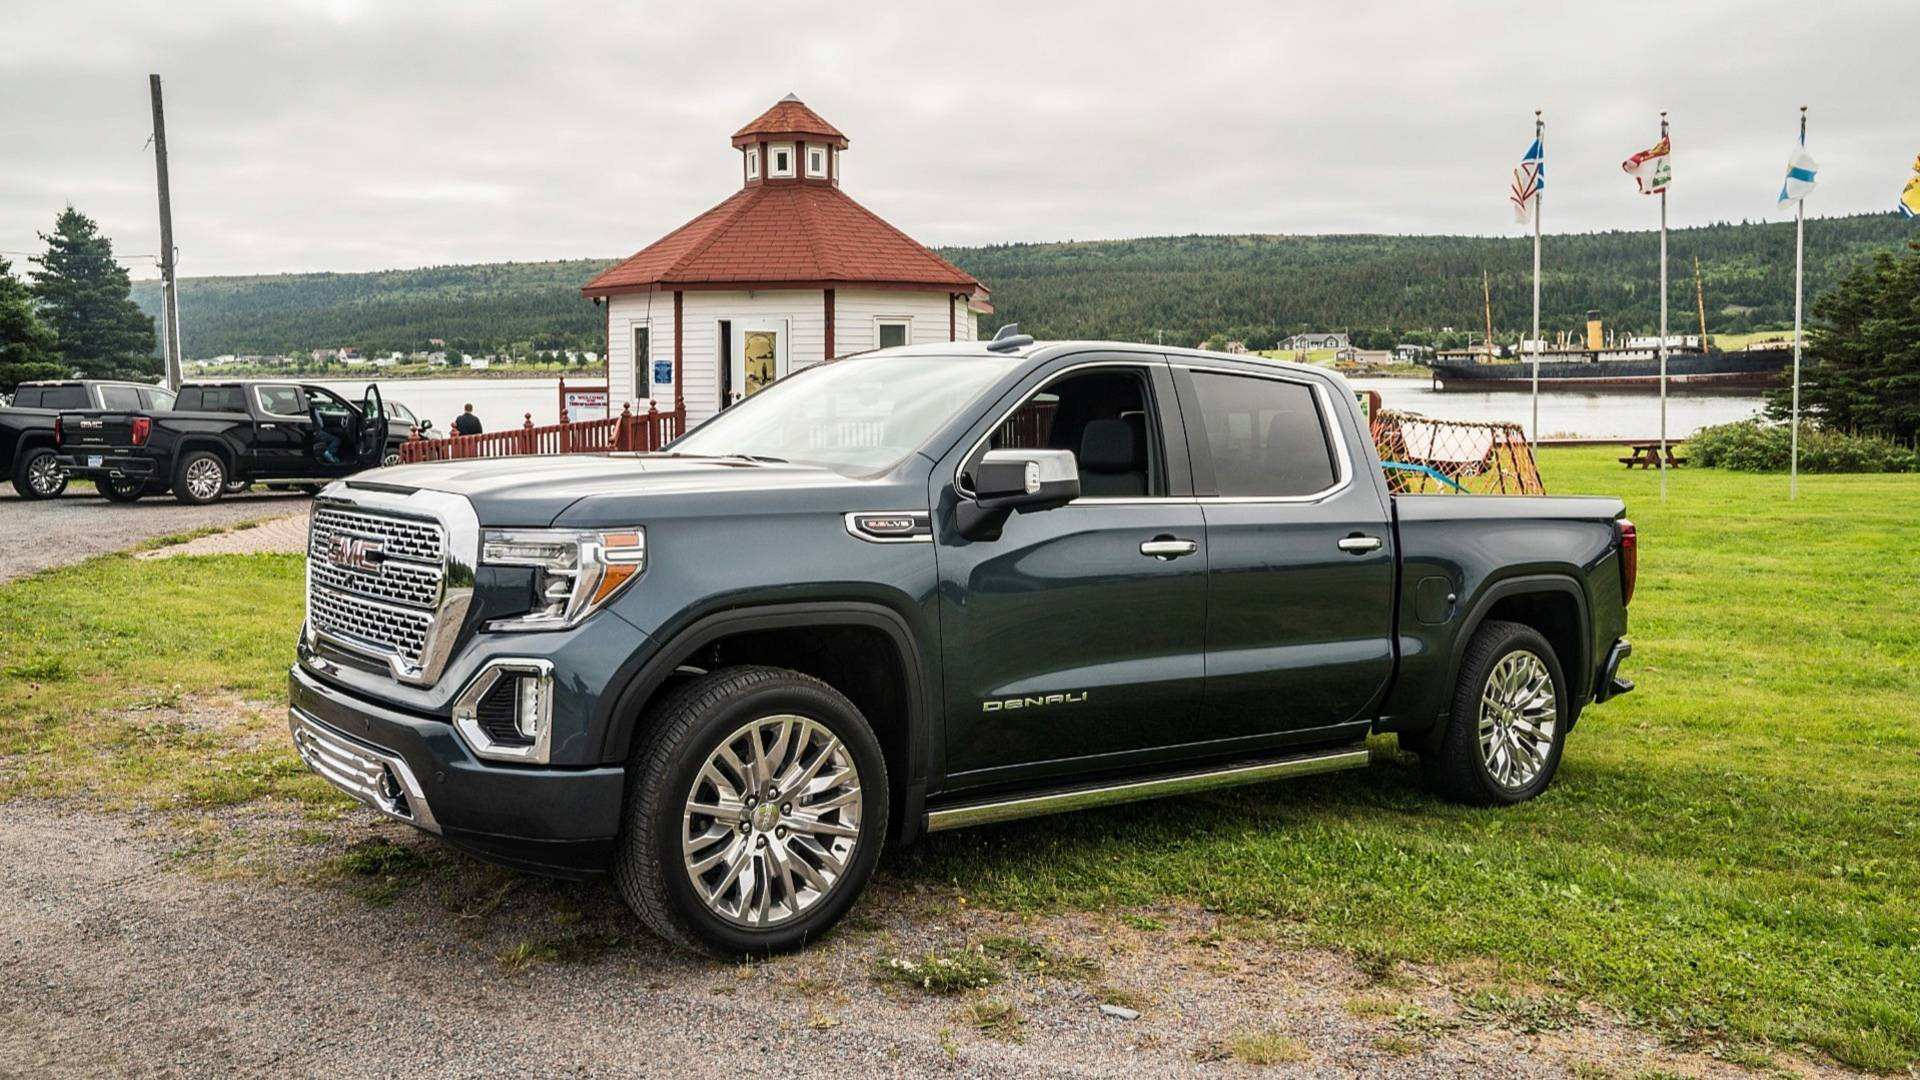 93 All New 2019 Gmc Yukon Diesel Photos for 2019 Gmc Yukon Diesel